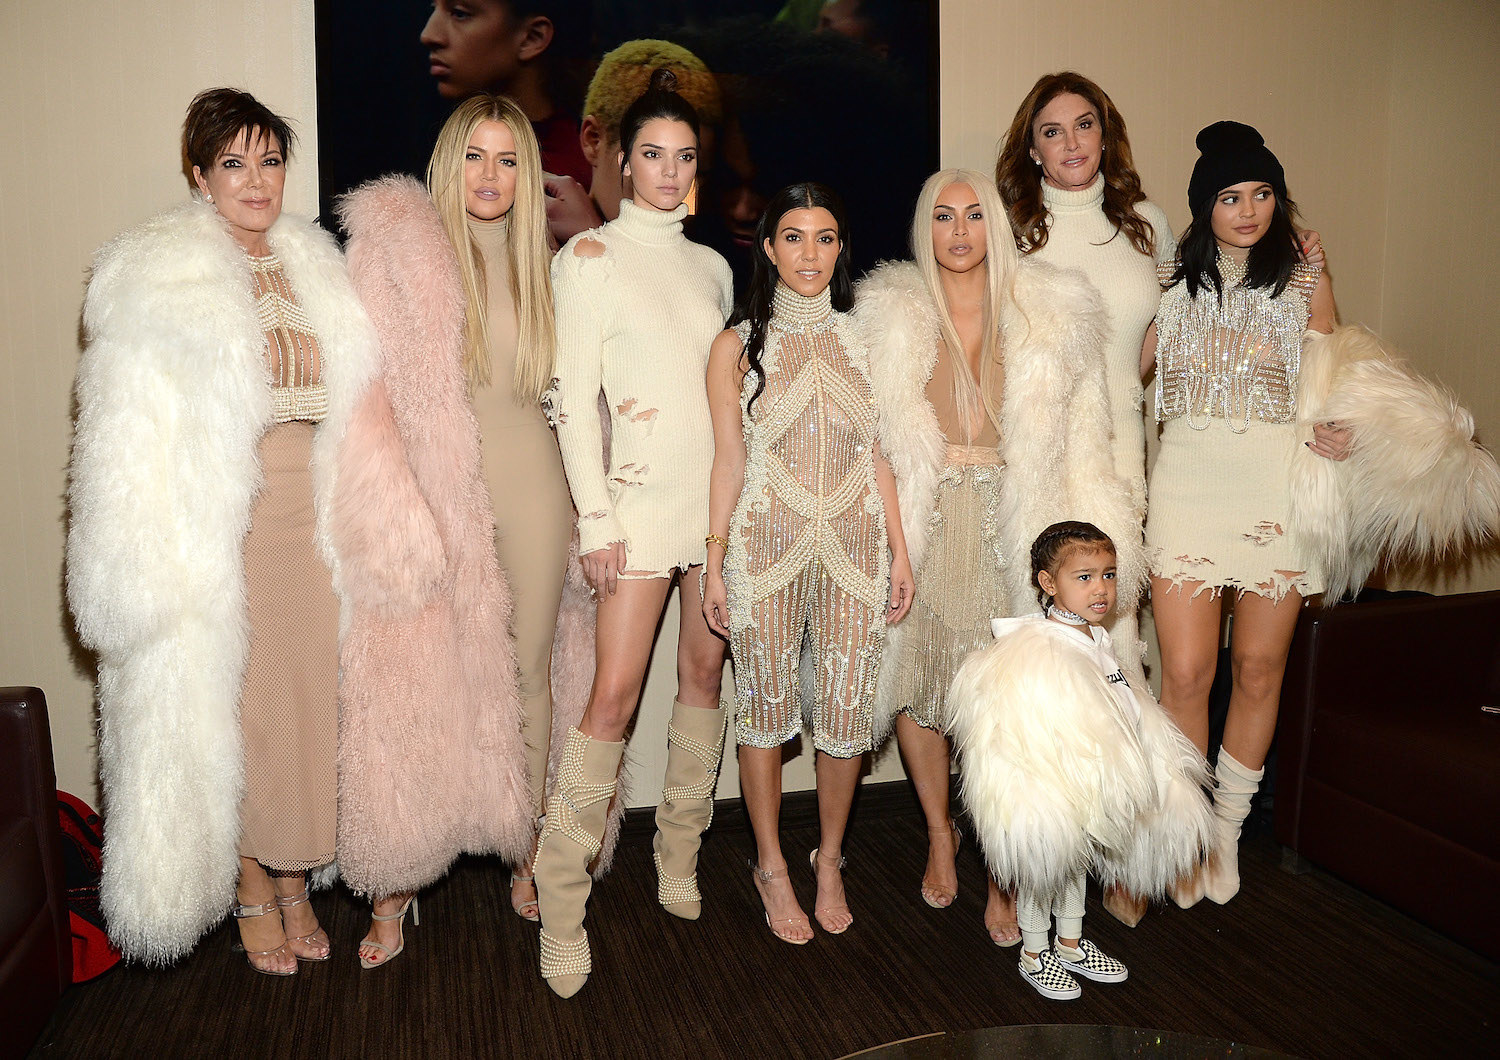 The Kardashians attend Kanye West Yeezy Season 3 at Madison Square Garden on February 11, 2016 in New York City.